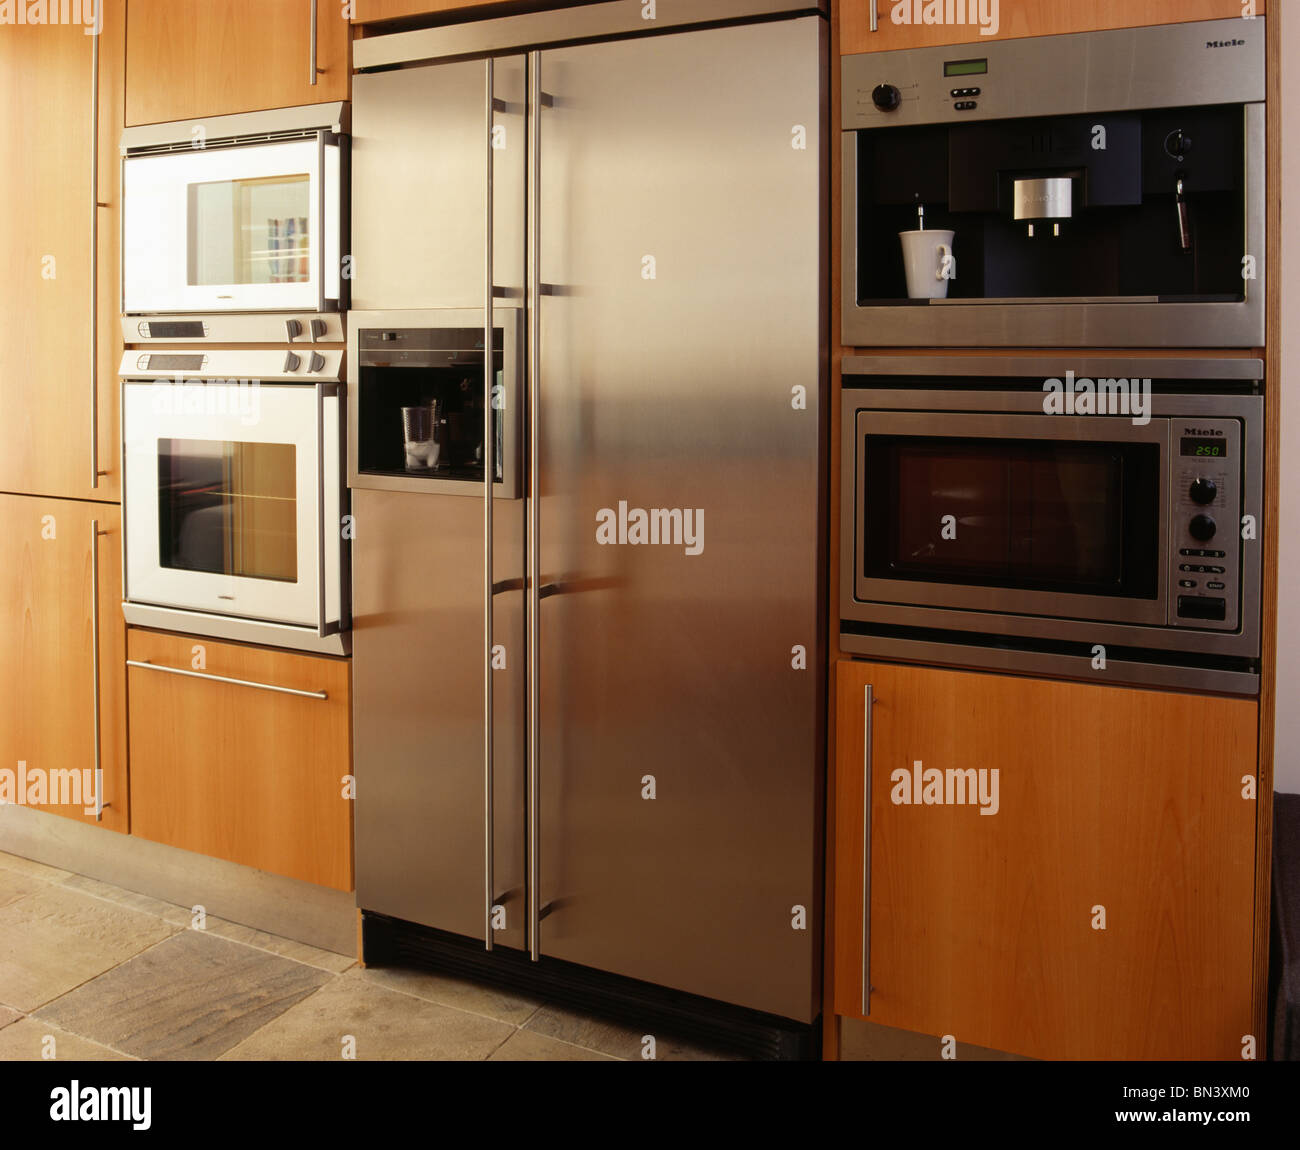 Large Stainless Steel American Style Fridge Freezer And